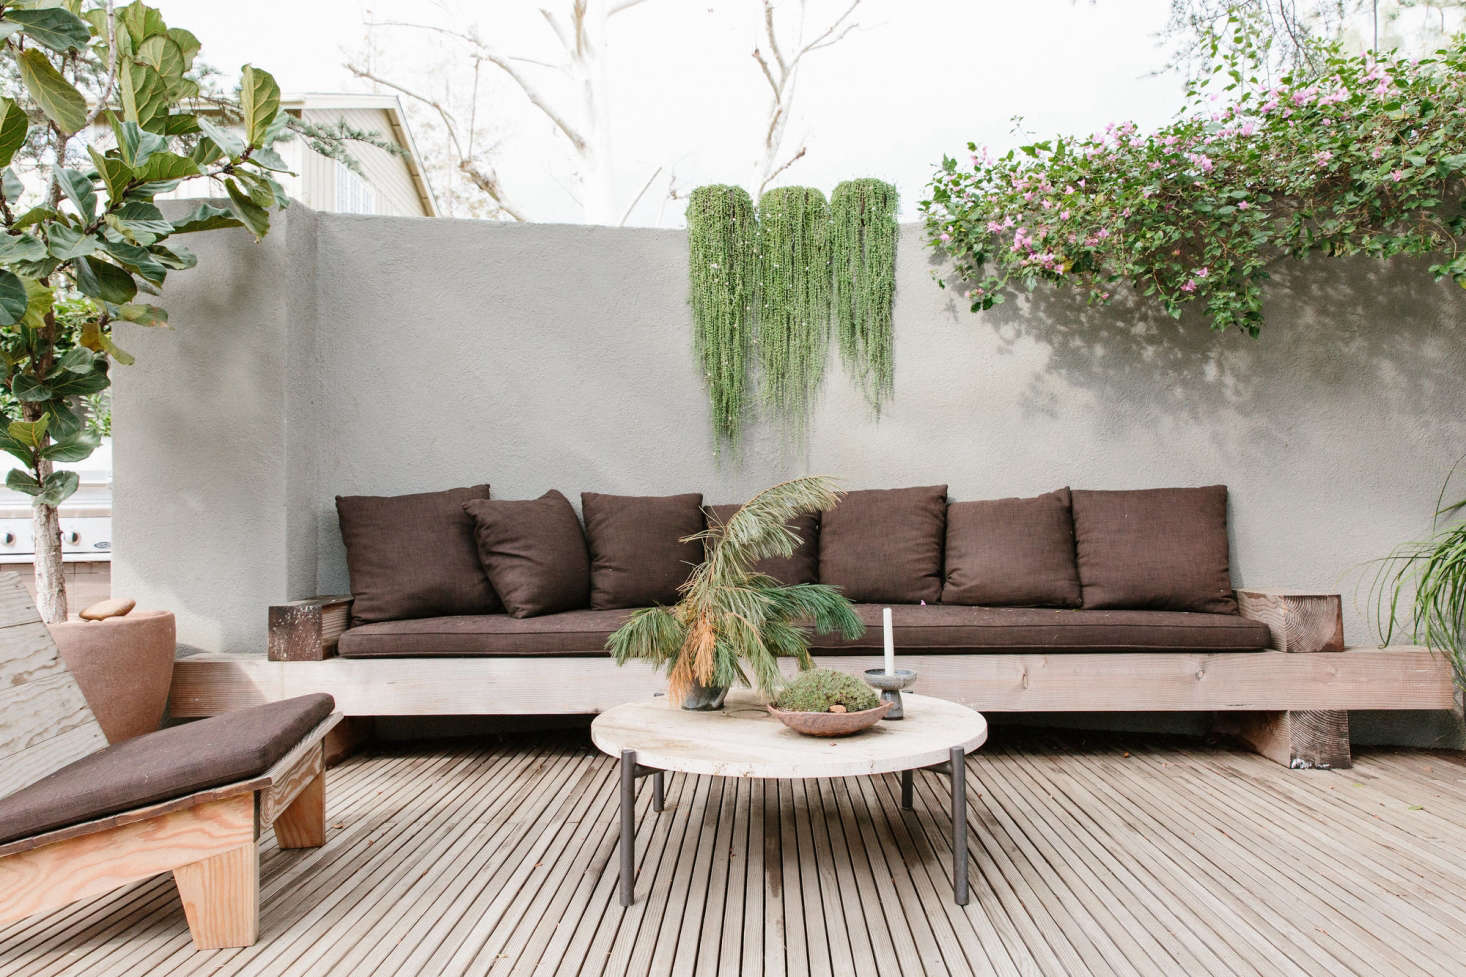 shamshiri employed neutral tones throughout her los angeles patio resulting in a calm unified oasis - Build A Patio